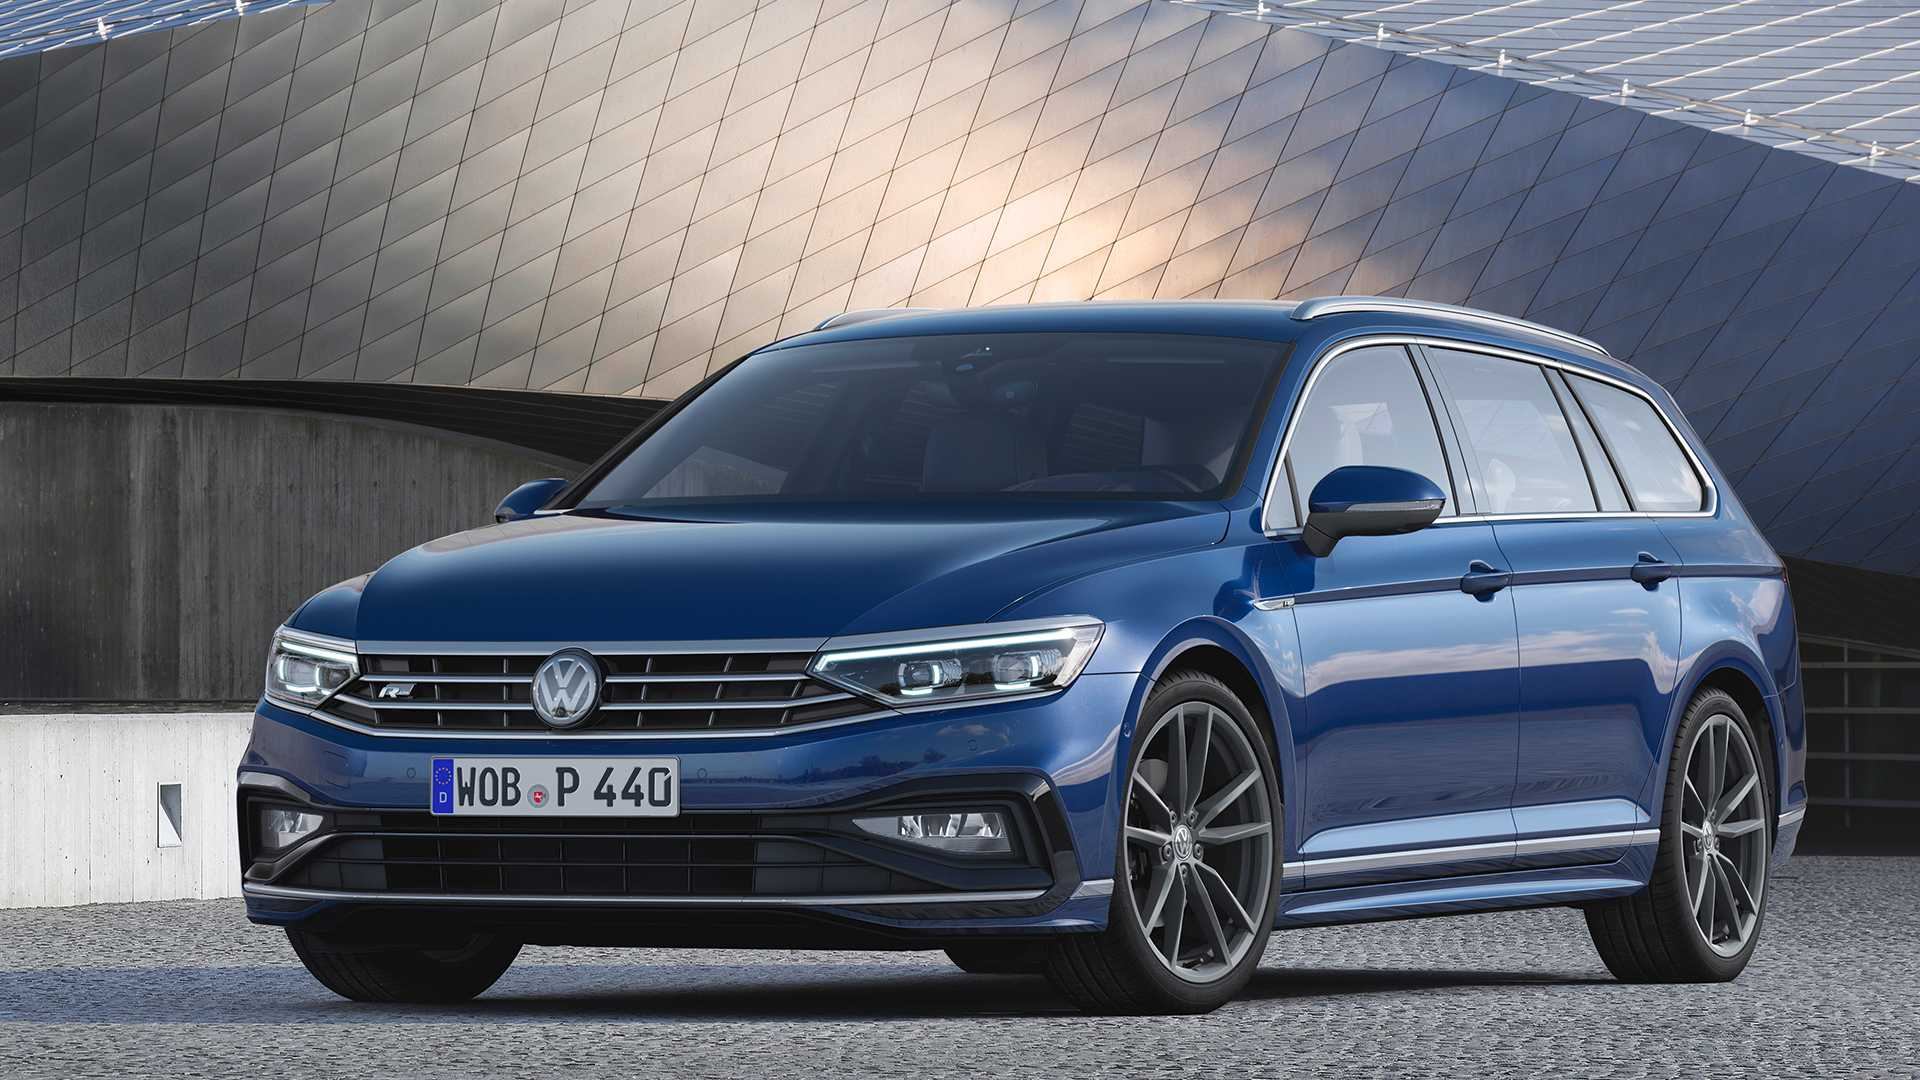 43 The 2019 The Next Generation VW Cc Images